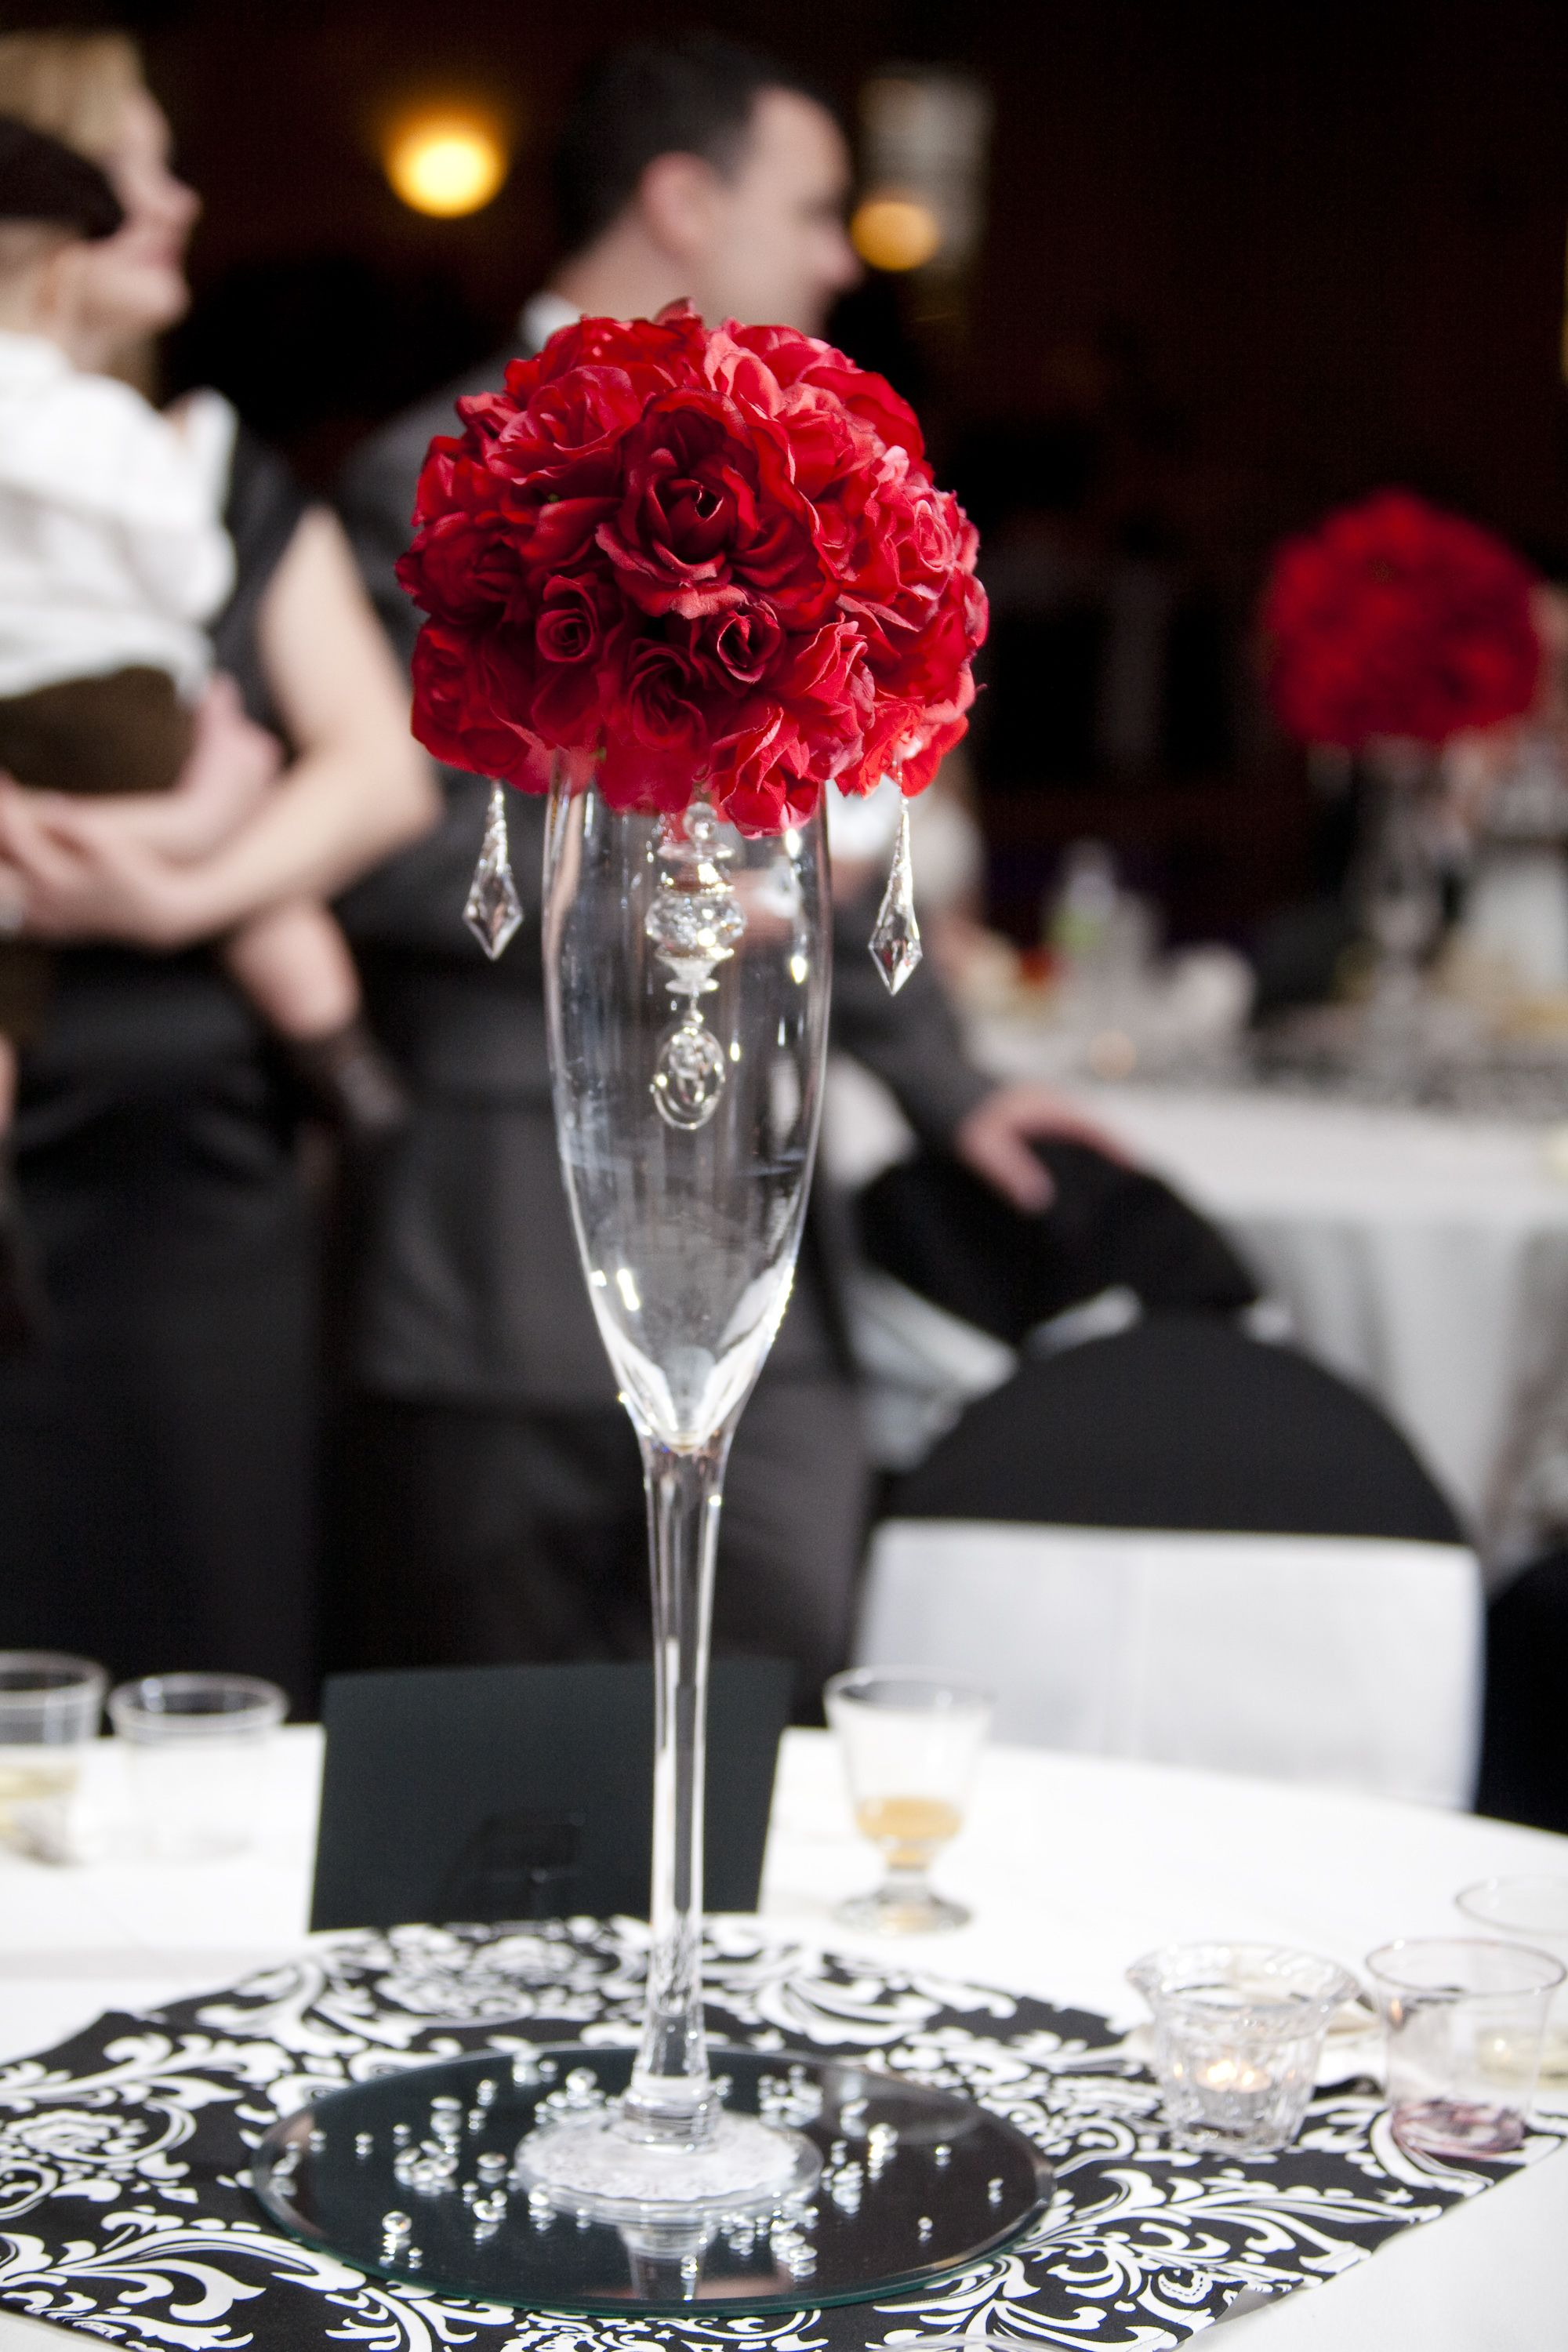 Wedding decorations red  Photo via Project Wedding  aranjamente festive  Pinterest  Red